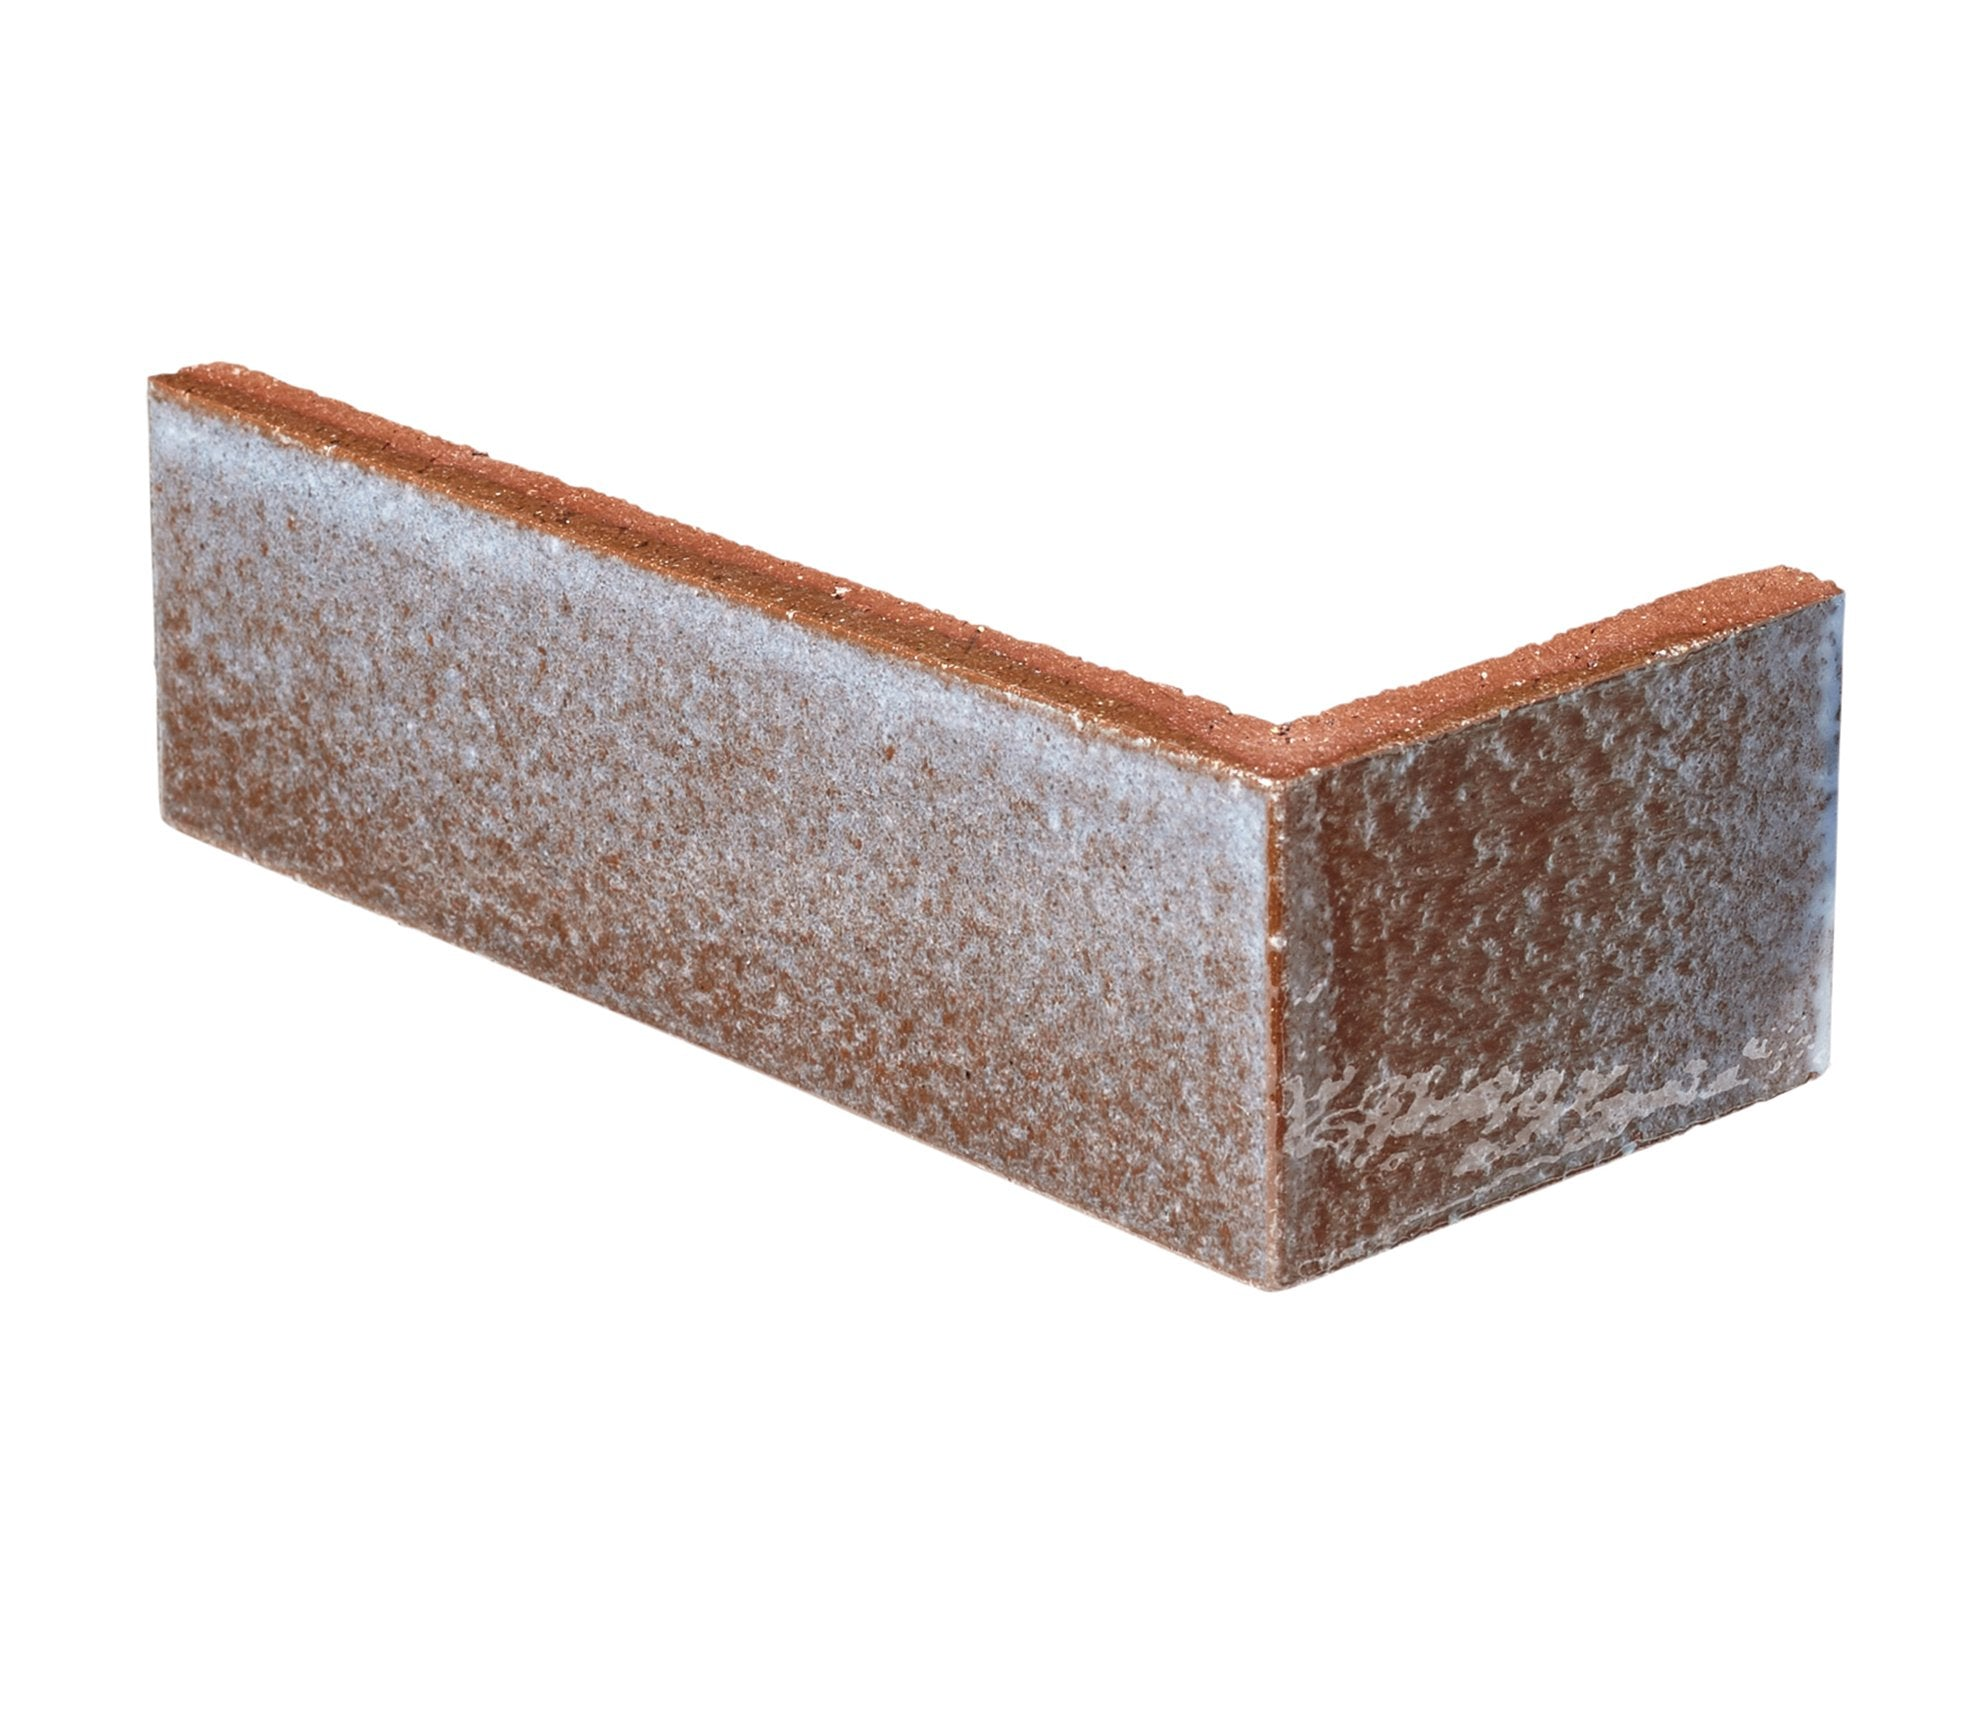 Terra Firma Glazed Bricks Product Image 18